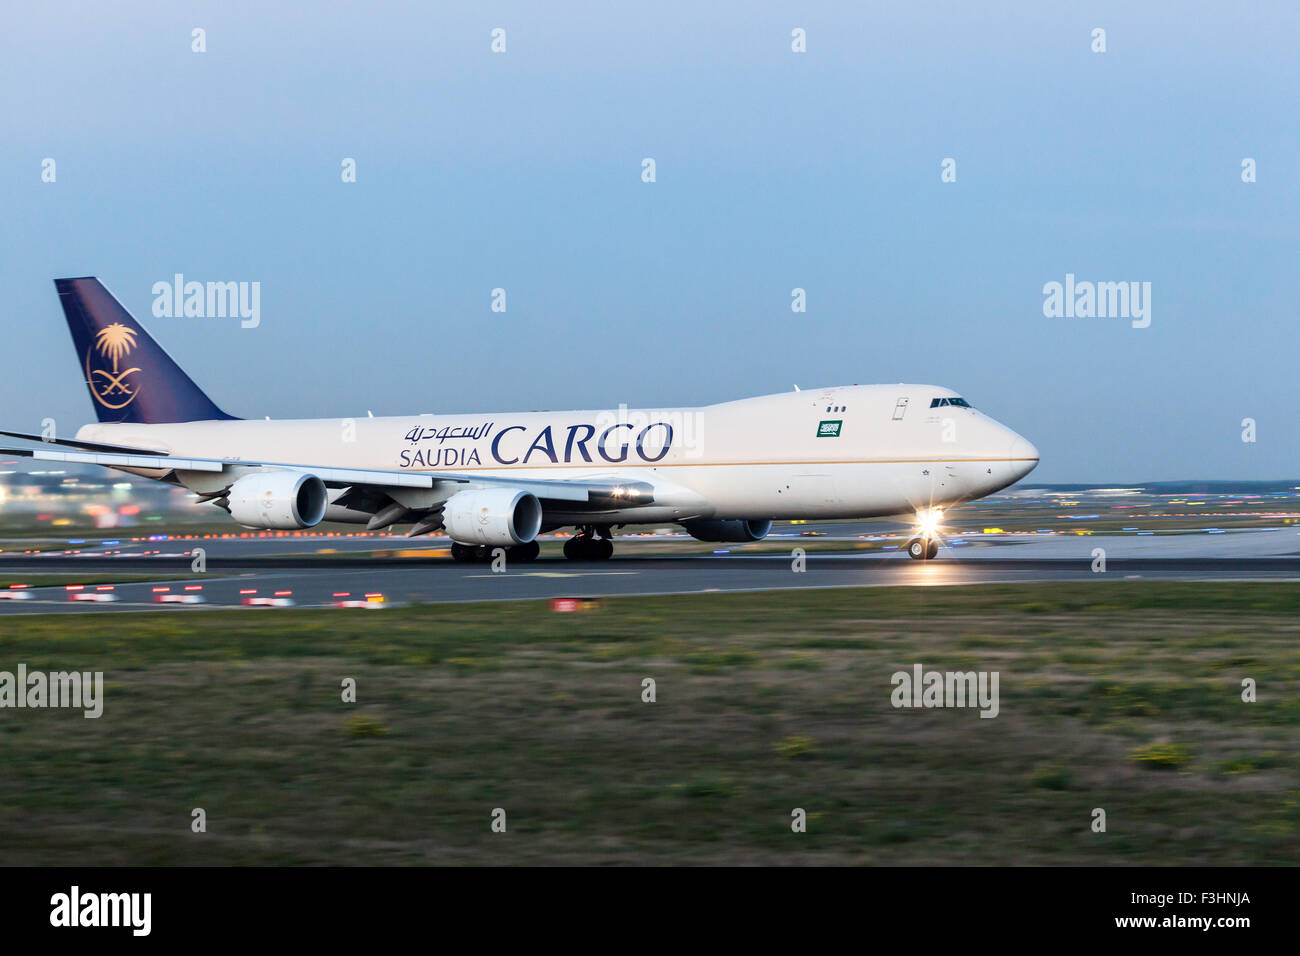 Saudia Cargo Boeing 747 at the runway of Frankfurt International Airport. - Stock Image